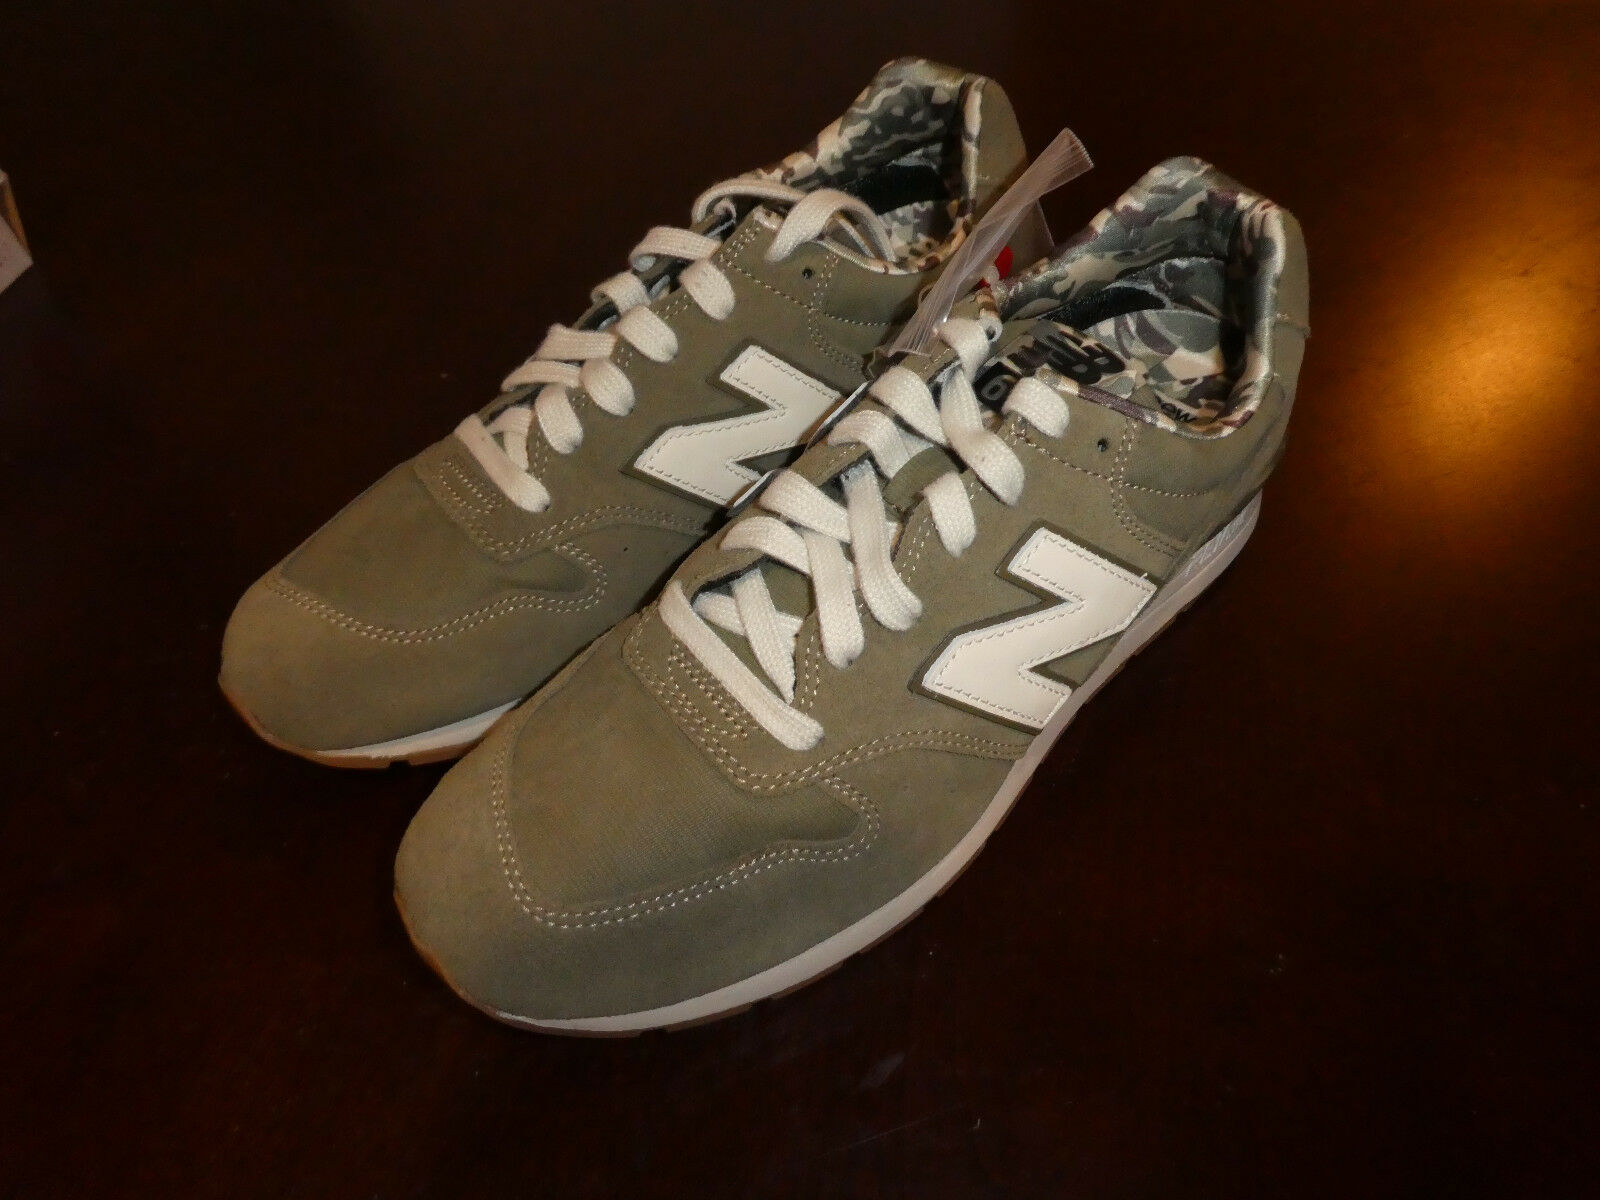 Mens New Balance MRL696FK shoes 696 Size 9.5 sneakers